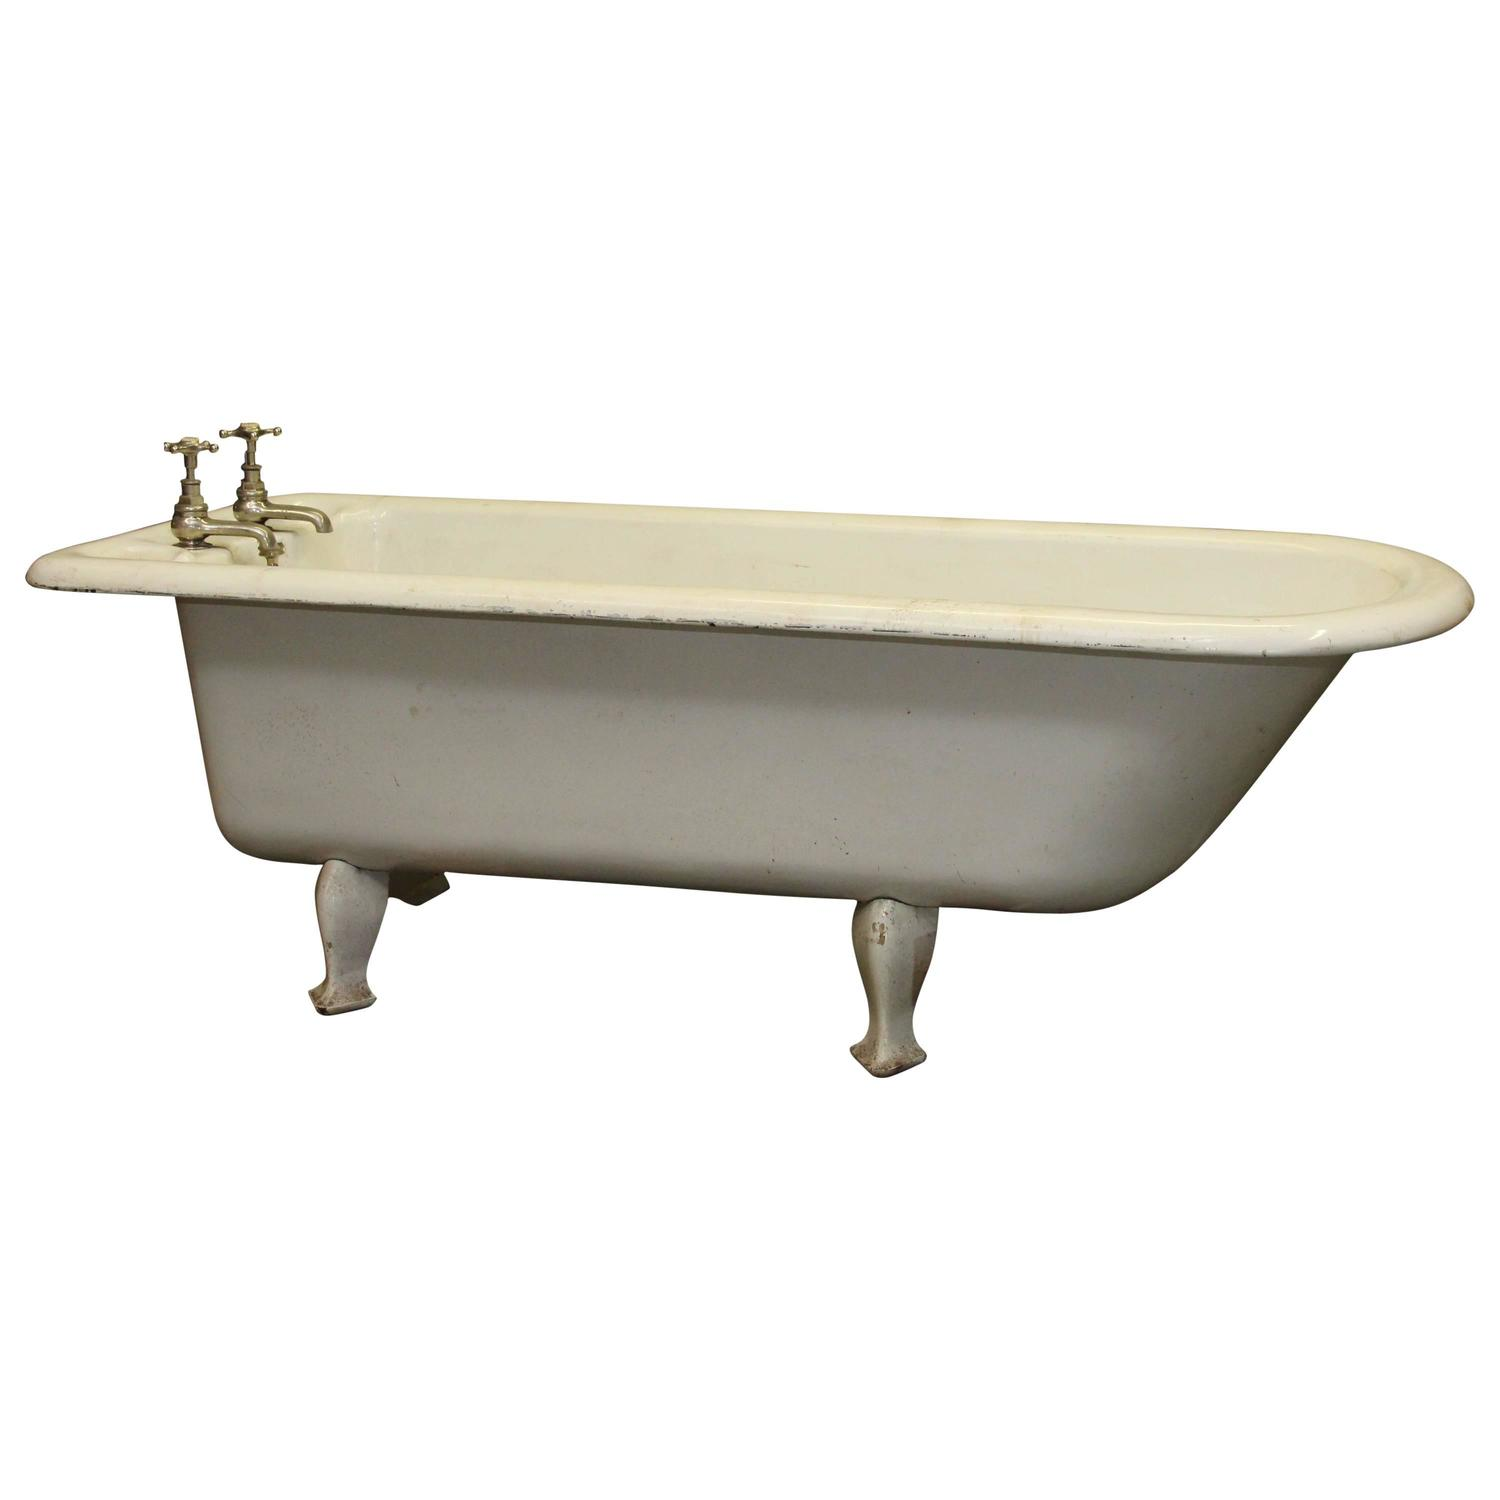 1800s Unique 6.5 foot long English Claw Foot Bathtub with Soap Dish ...